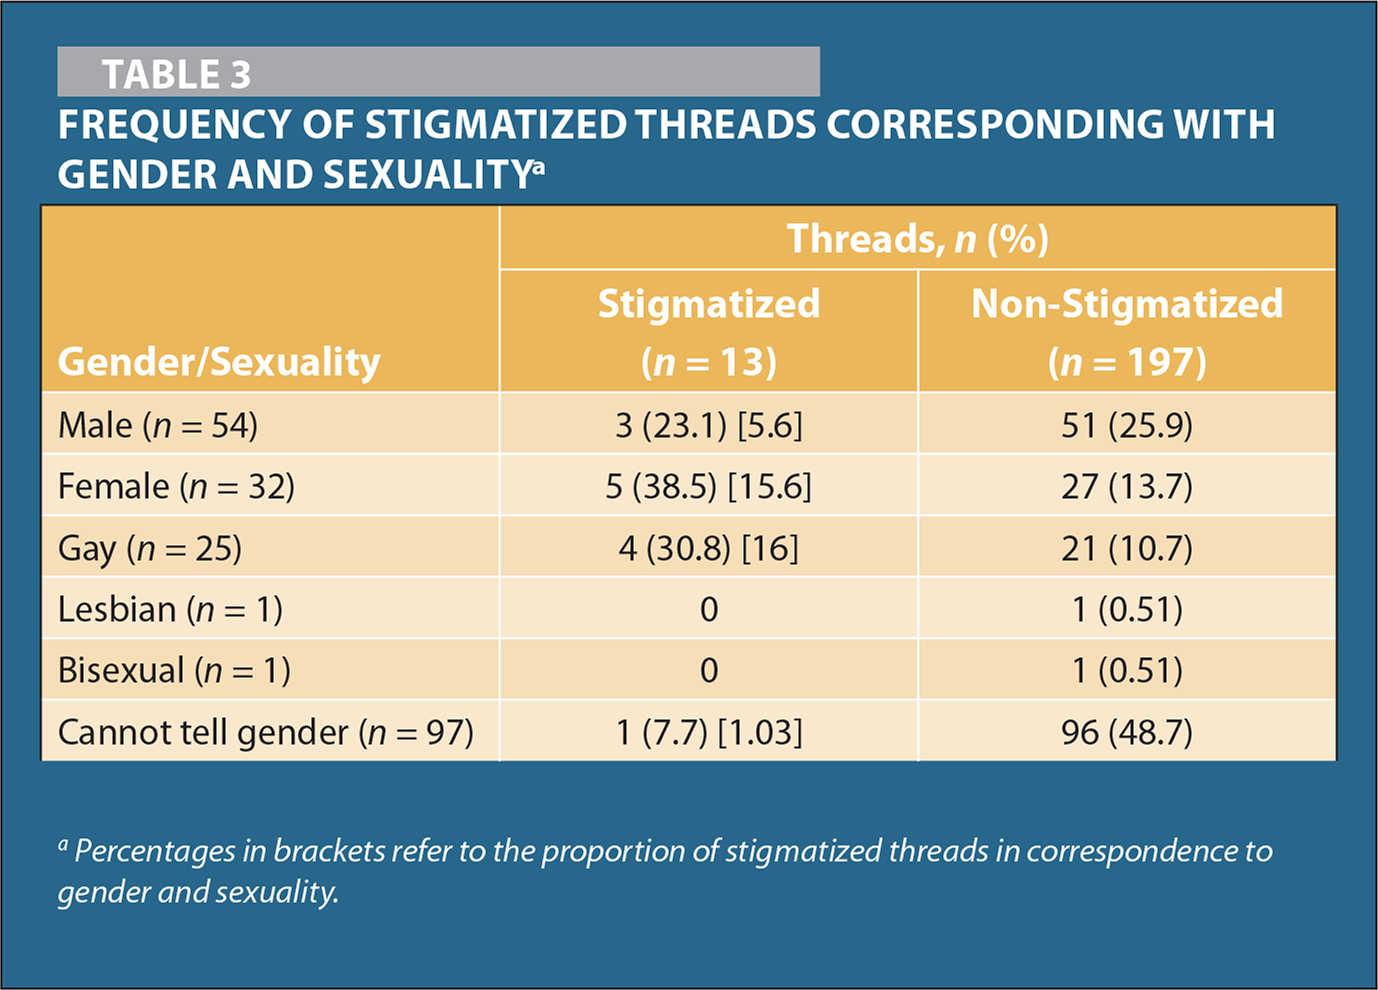 Frequency of Stigmatized Threads Corresponding With Gender and Sexualitya